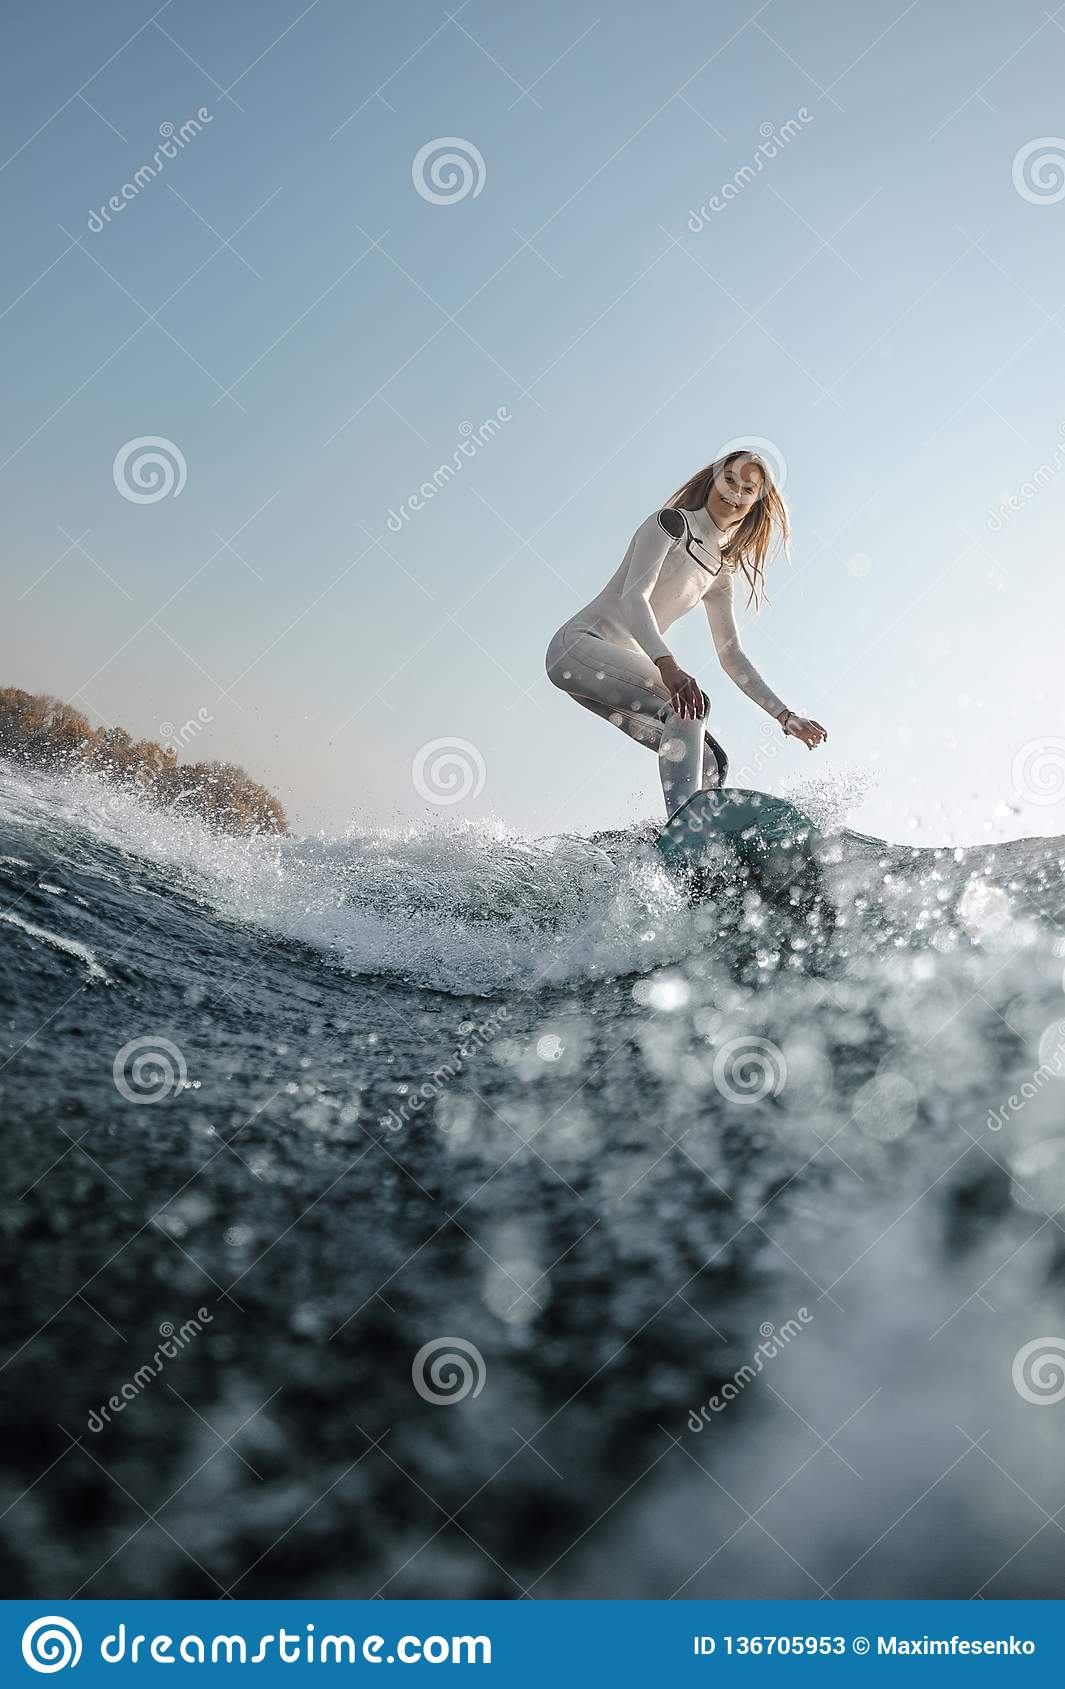 Blonde girl riding on the wakeboard on the river